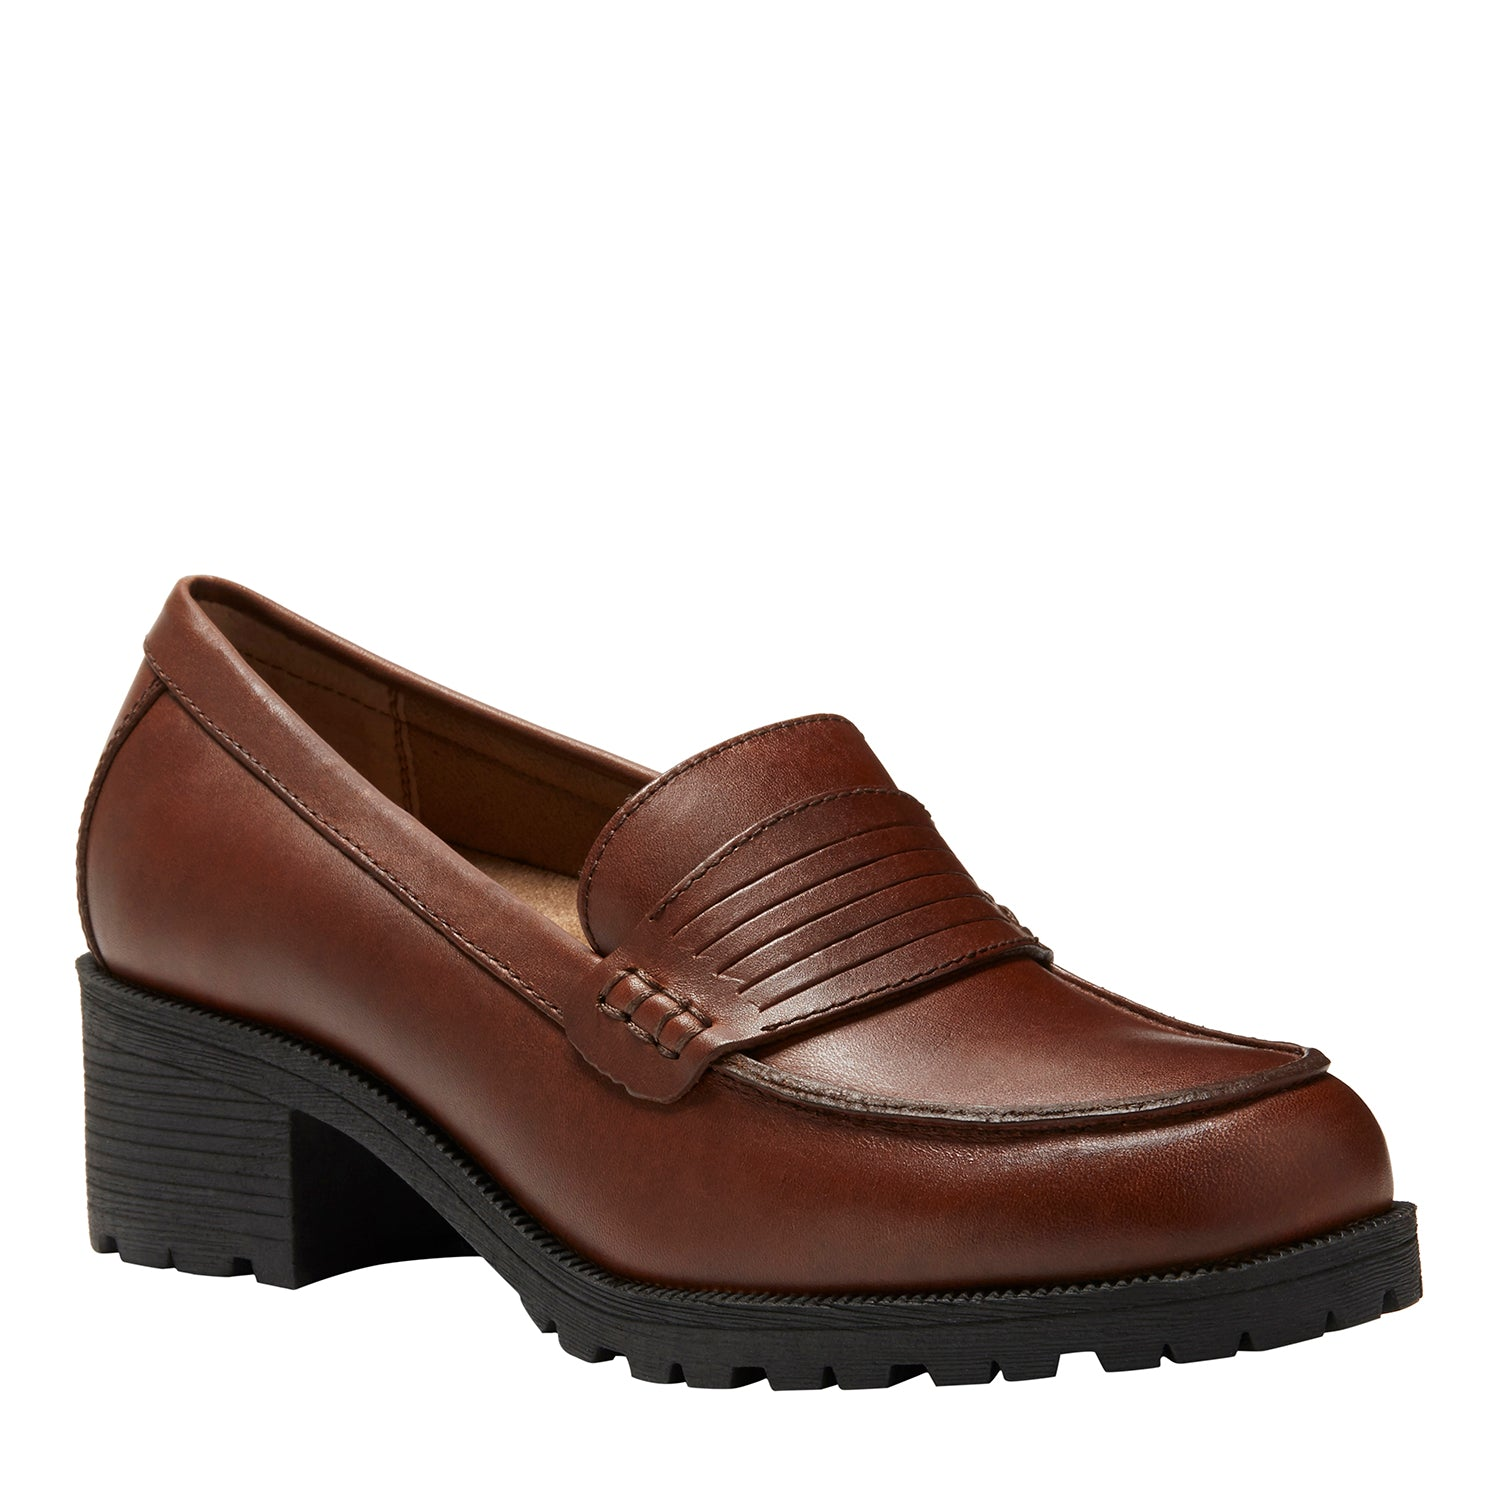 'Eastland' 3934-02 - Newbury Penny Loafer - Brown